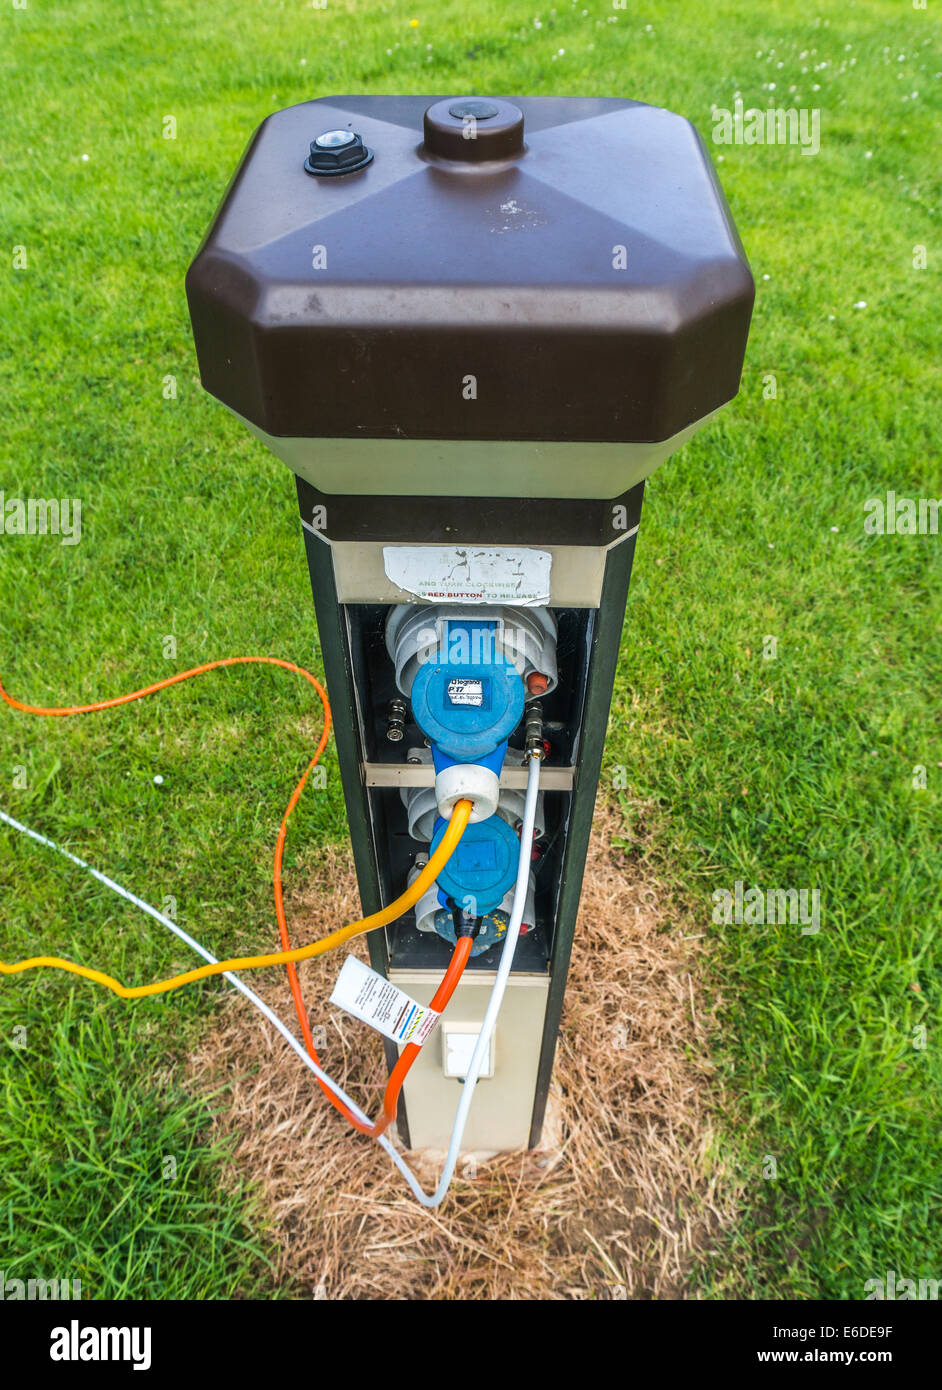 An electricity supply box with connections and cables on a Caravan Club campsite in England, UK. - Stock Image